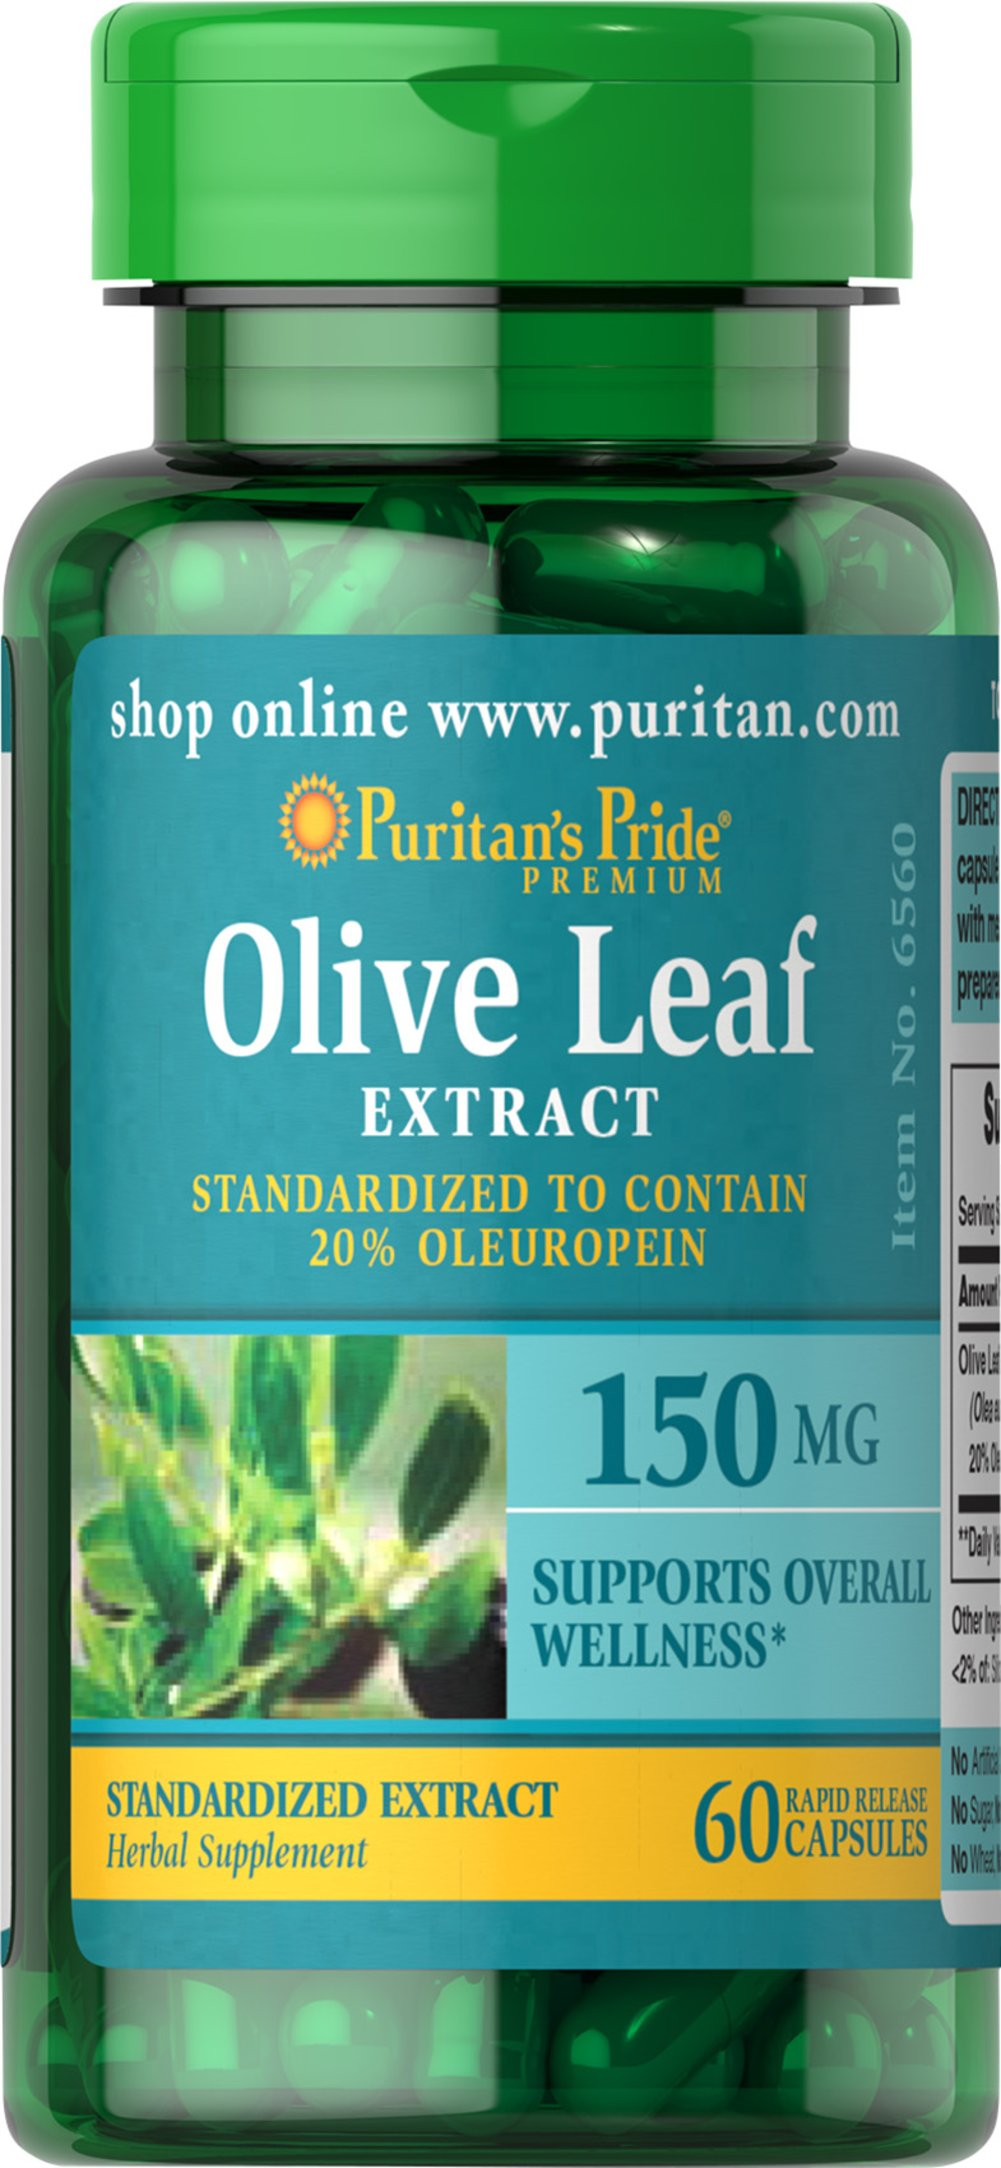 Olive Leaf Standardized Extract 150 mg <p>Our Olive Leaf Extract is derived from the leaves of the Mediterranean olive tree. This extract is standardized for 20% Oleuropein, a powerful phytonutrient. Olive leaves have been used for overall well-being for thousands of years by people in countries bordering the Mediterranean.</p> 60 Capsules 150 mg $9.99